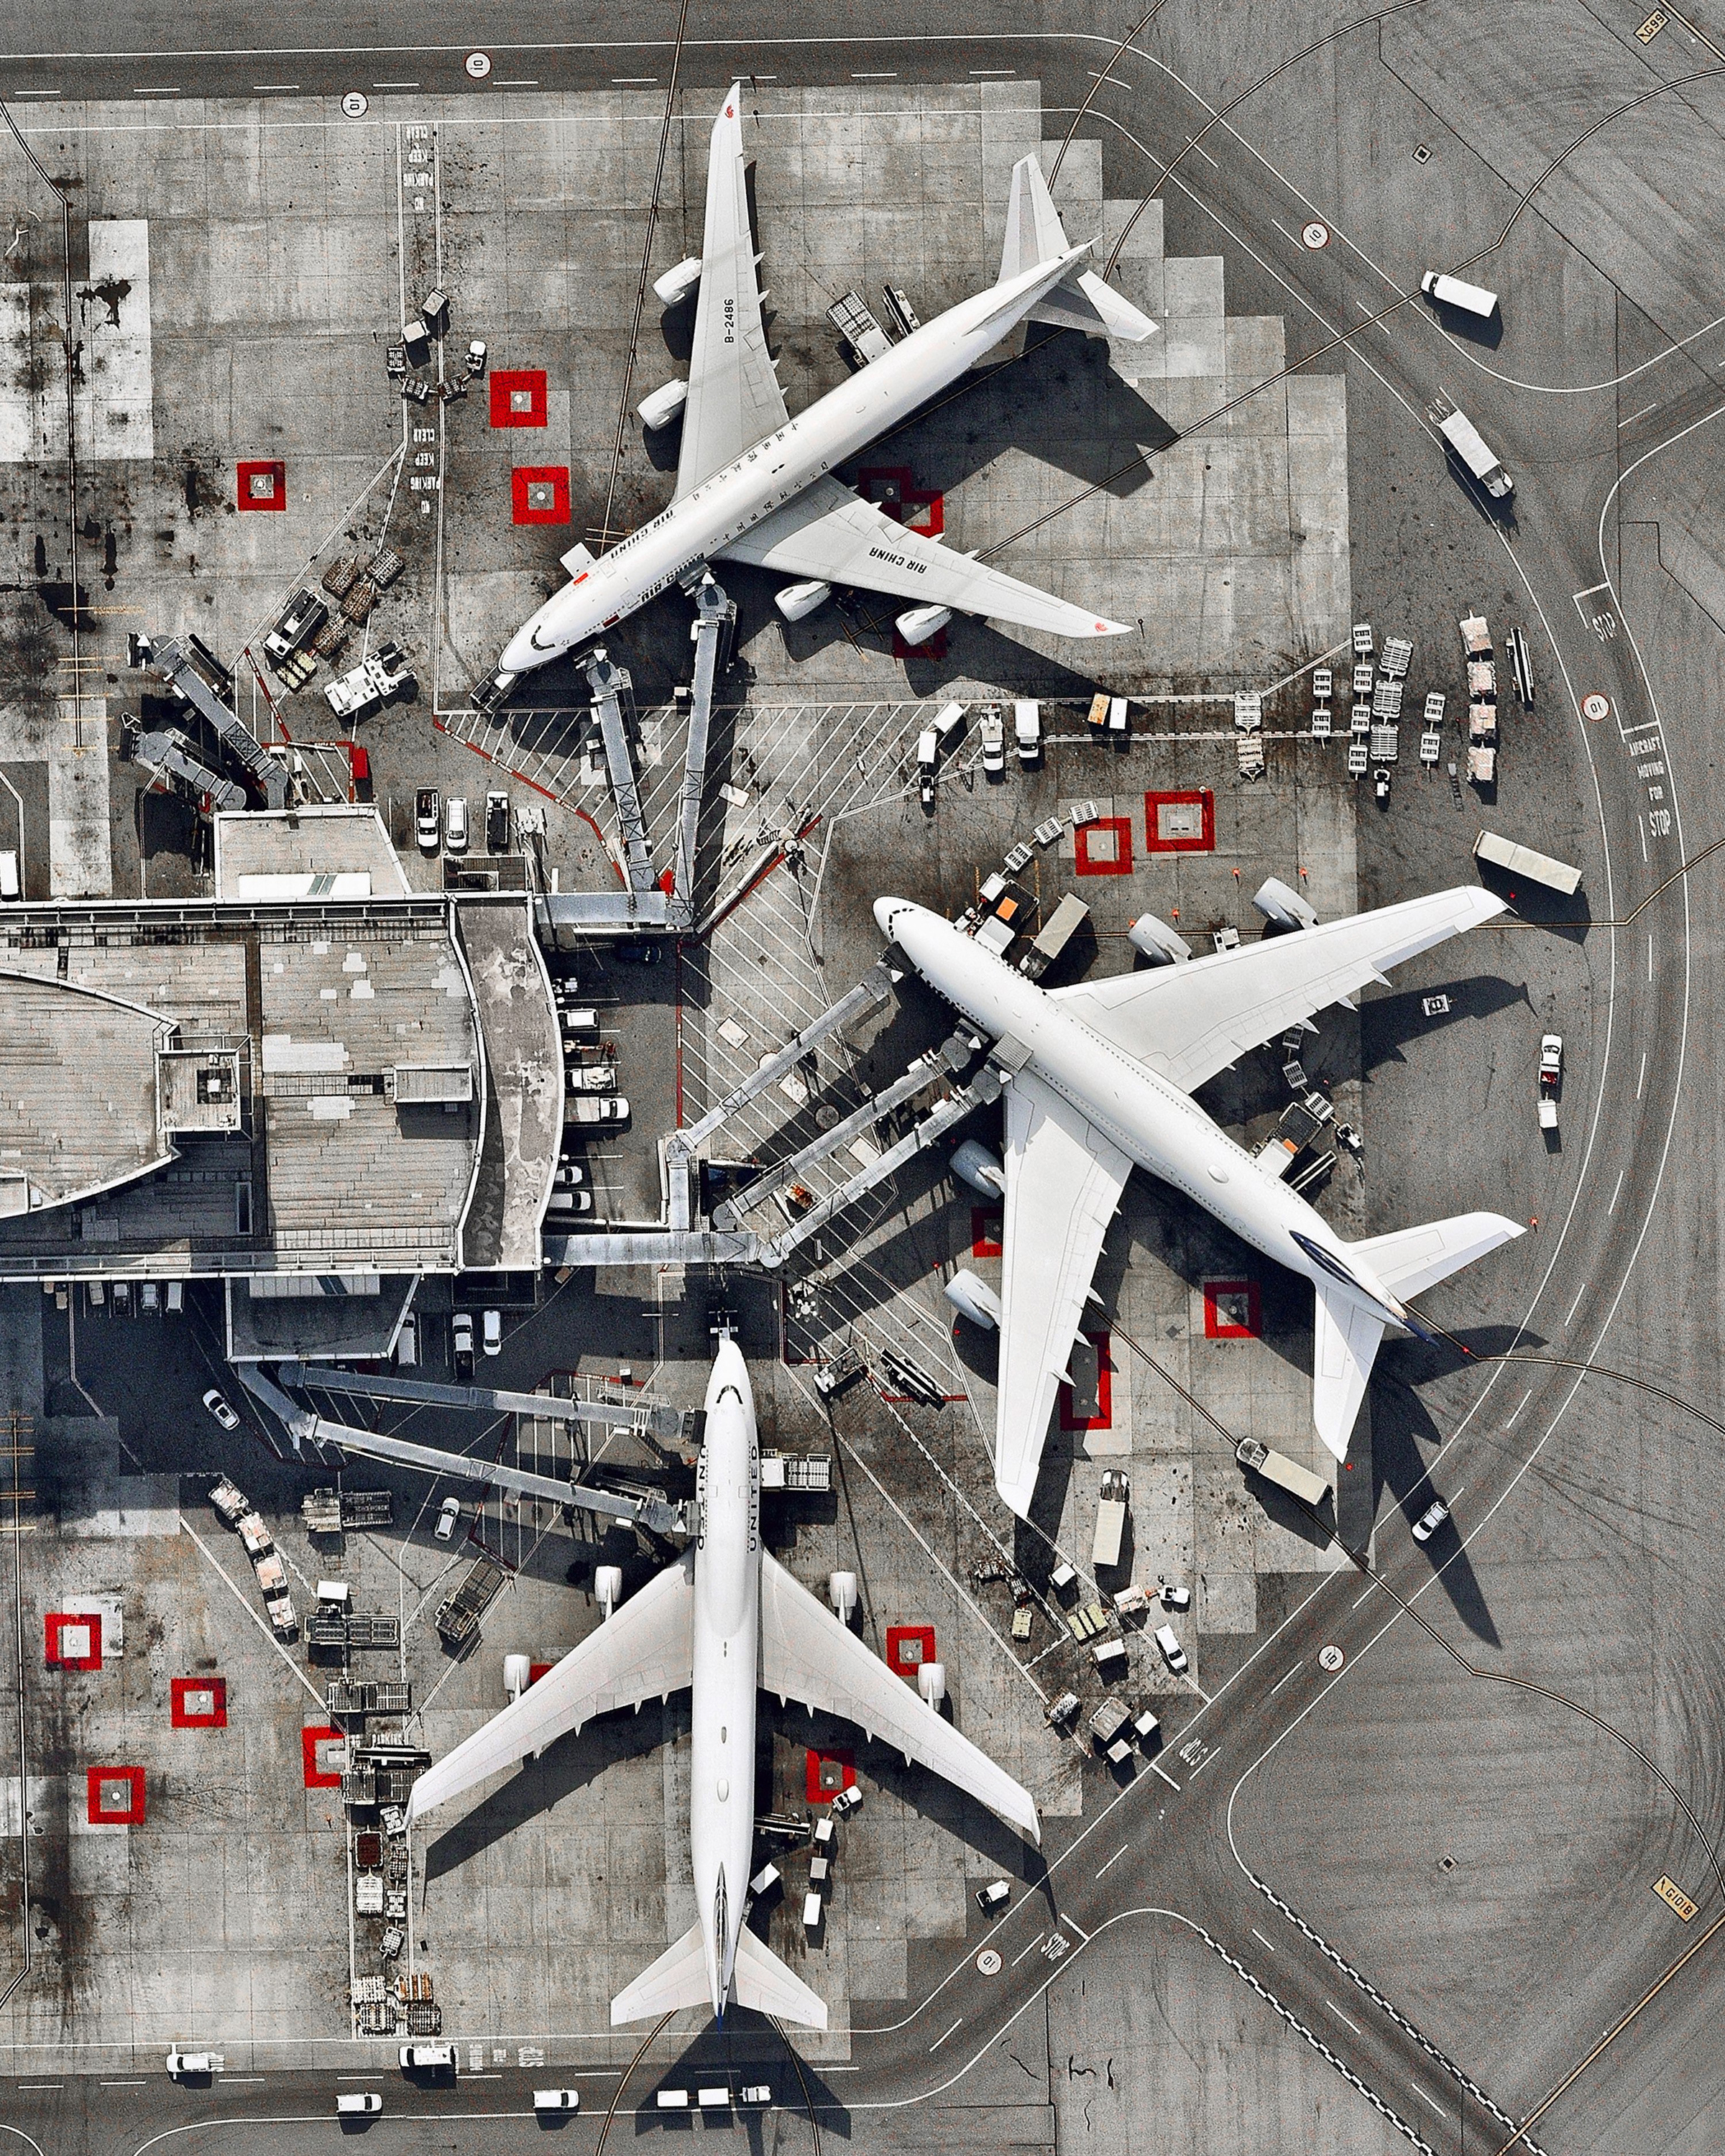 """Three massive airplanes are docked at San Francisco International Airport in California, USA. SFO is the 21st busiest airport in the world by passenger traffic, accommodating more than 50 million passengers each year.  37°37'07.2""""N, 122°23'35.8""""W  Source imagery: Nearmap"""